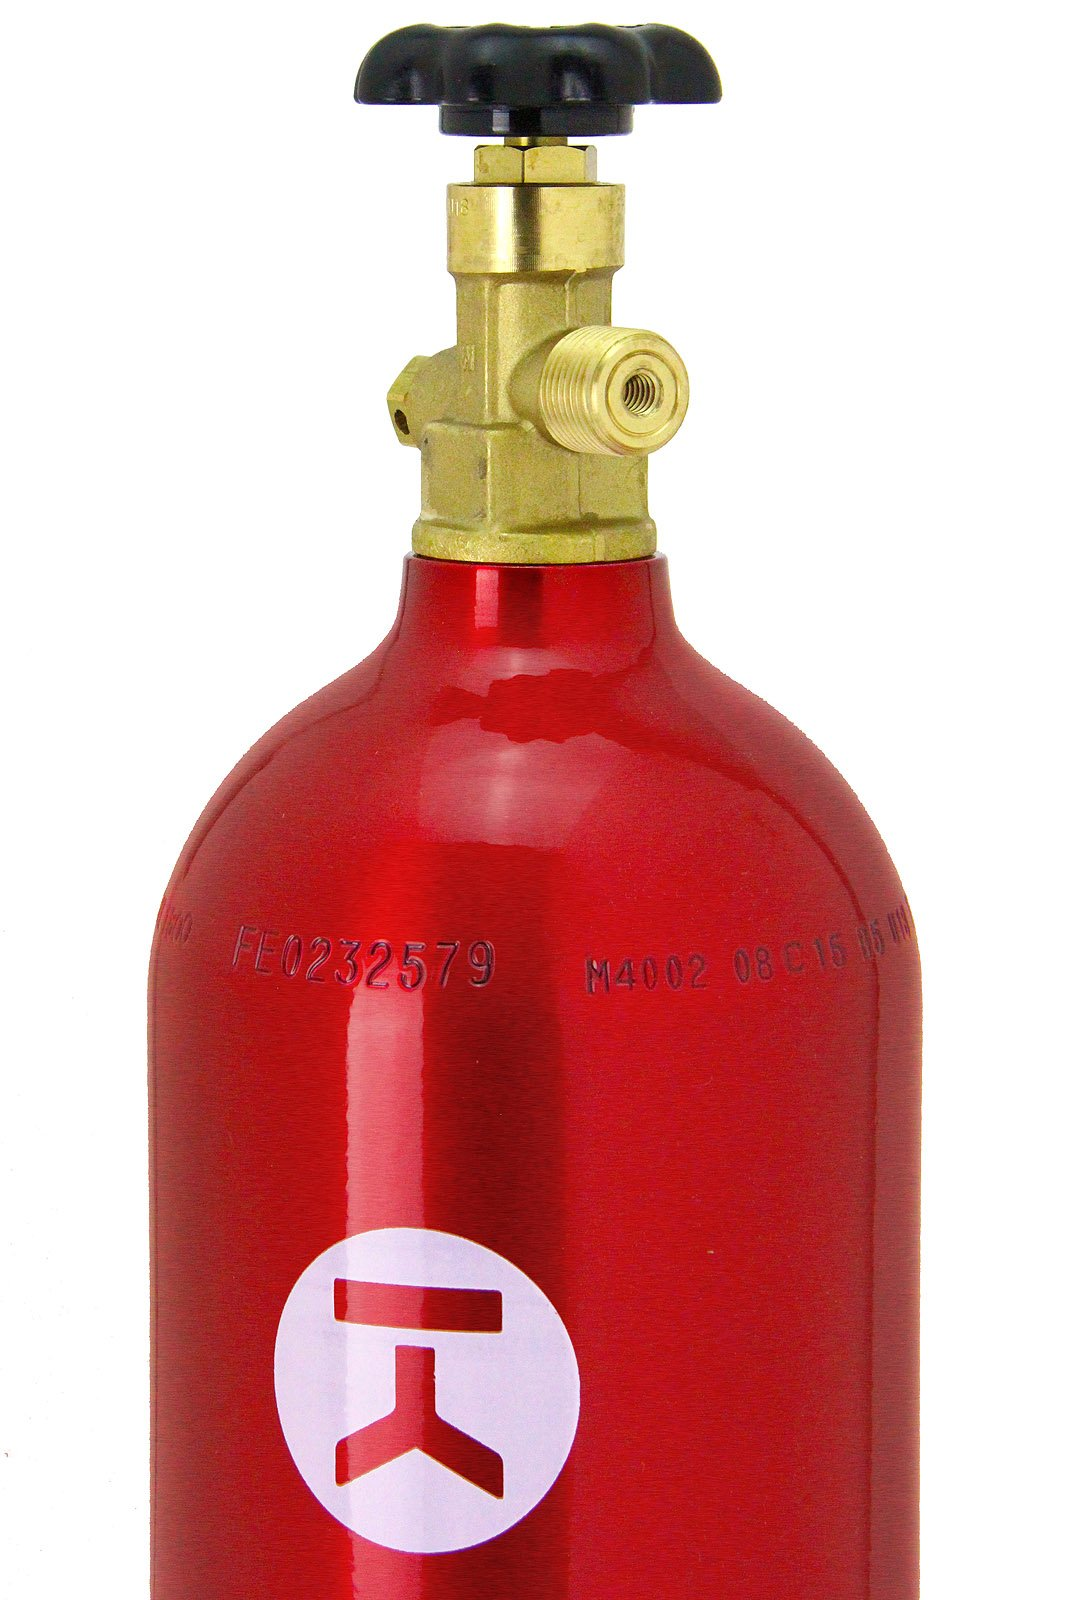 Kegco B5-RED 5 lb. Aluminum Co2 Tank with Red Finish for Kegerator and Draft Beer Dispensing by Kegco (Image #1)